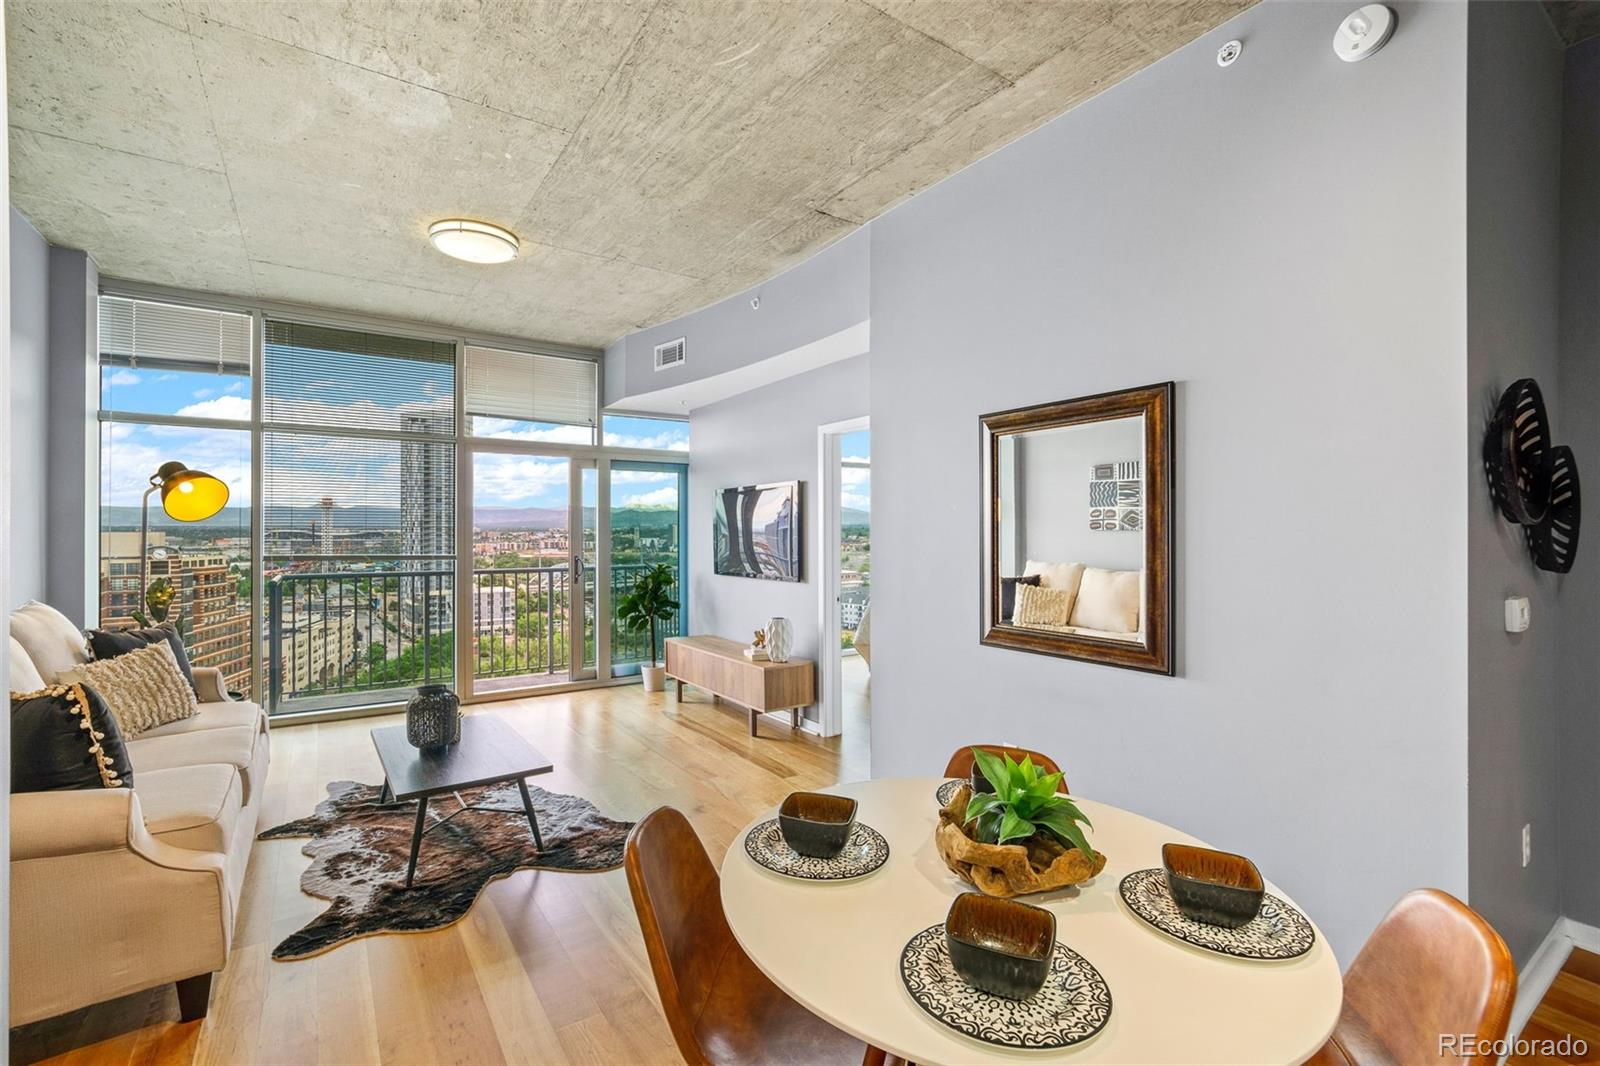 Wow - floor to ceiling windows in the living room AND the bedroom AND a private balcony all offering an incredible, expansive view of the wide open blue sky, snow capped mountains and the lush green way of Riverfront Park!  This 16th floor unit is the luxurious home you've been seeking in Downtown Denver.  Walk to everything! Or, if you don't want to leave home, enjoy all the amenities the Glass House has to offer: 24 / 7 concierge service, huge fitness center including Pilates reformers, free weights, cycling rooms, cardio area, and a massive cross-training room.  The eighth floors connect the two towers together by a large community room with multiple seating areas, a movie room, a business center, and a coffee station.  Additionally, there is a full-size swimming pool and fire pit with grills.   Walk steps from the entrance of the building to explore 23 acres of Green space as you stroll through Riverfront Park.   Set between the skyline of the Central Business District and the tree lined shores of the South Platte River this is the perfect place to relax, right outside your front door.  Punctuated by an off-leash dog park and weekend picnickers, Riverfront is a gem of a park with an urban vibe.    Back inside unit #1605, this one bedroom, one bath condo offers comfort and modern living in a loft high above it all.   The home is flooded with natural light because of the southwest facing floor-to-ceiling windows. The spacious, updated kitchen features stainless steel appliances, granite counter tops, contemporary fixtures, a handy kitchen island and sleek subway tile. The master bedroom has a large walk-in closet as well as an en suite bathroom.  This unit includes a reserved parking spot, a storage unit and one of the best private balconies in all of Denver.     This one is worth your time to check out - a home for all the seasons to come.